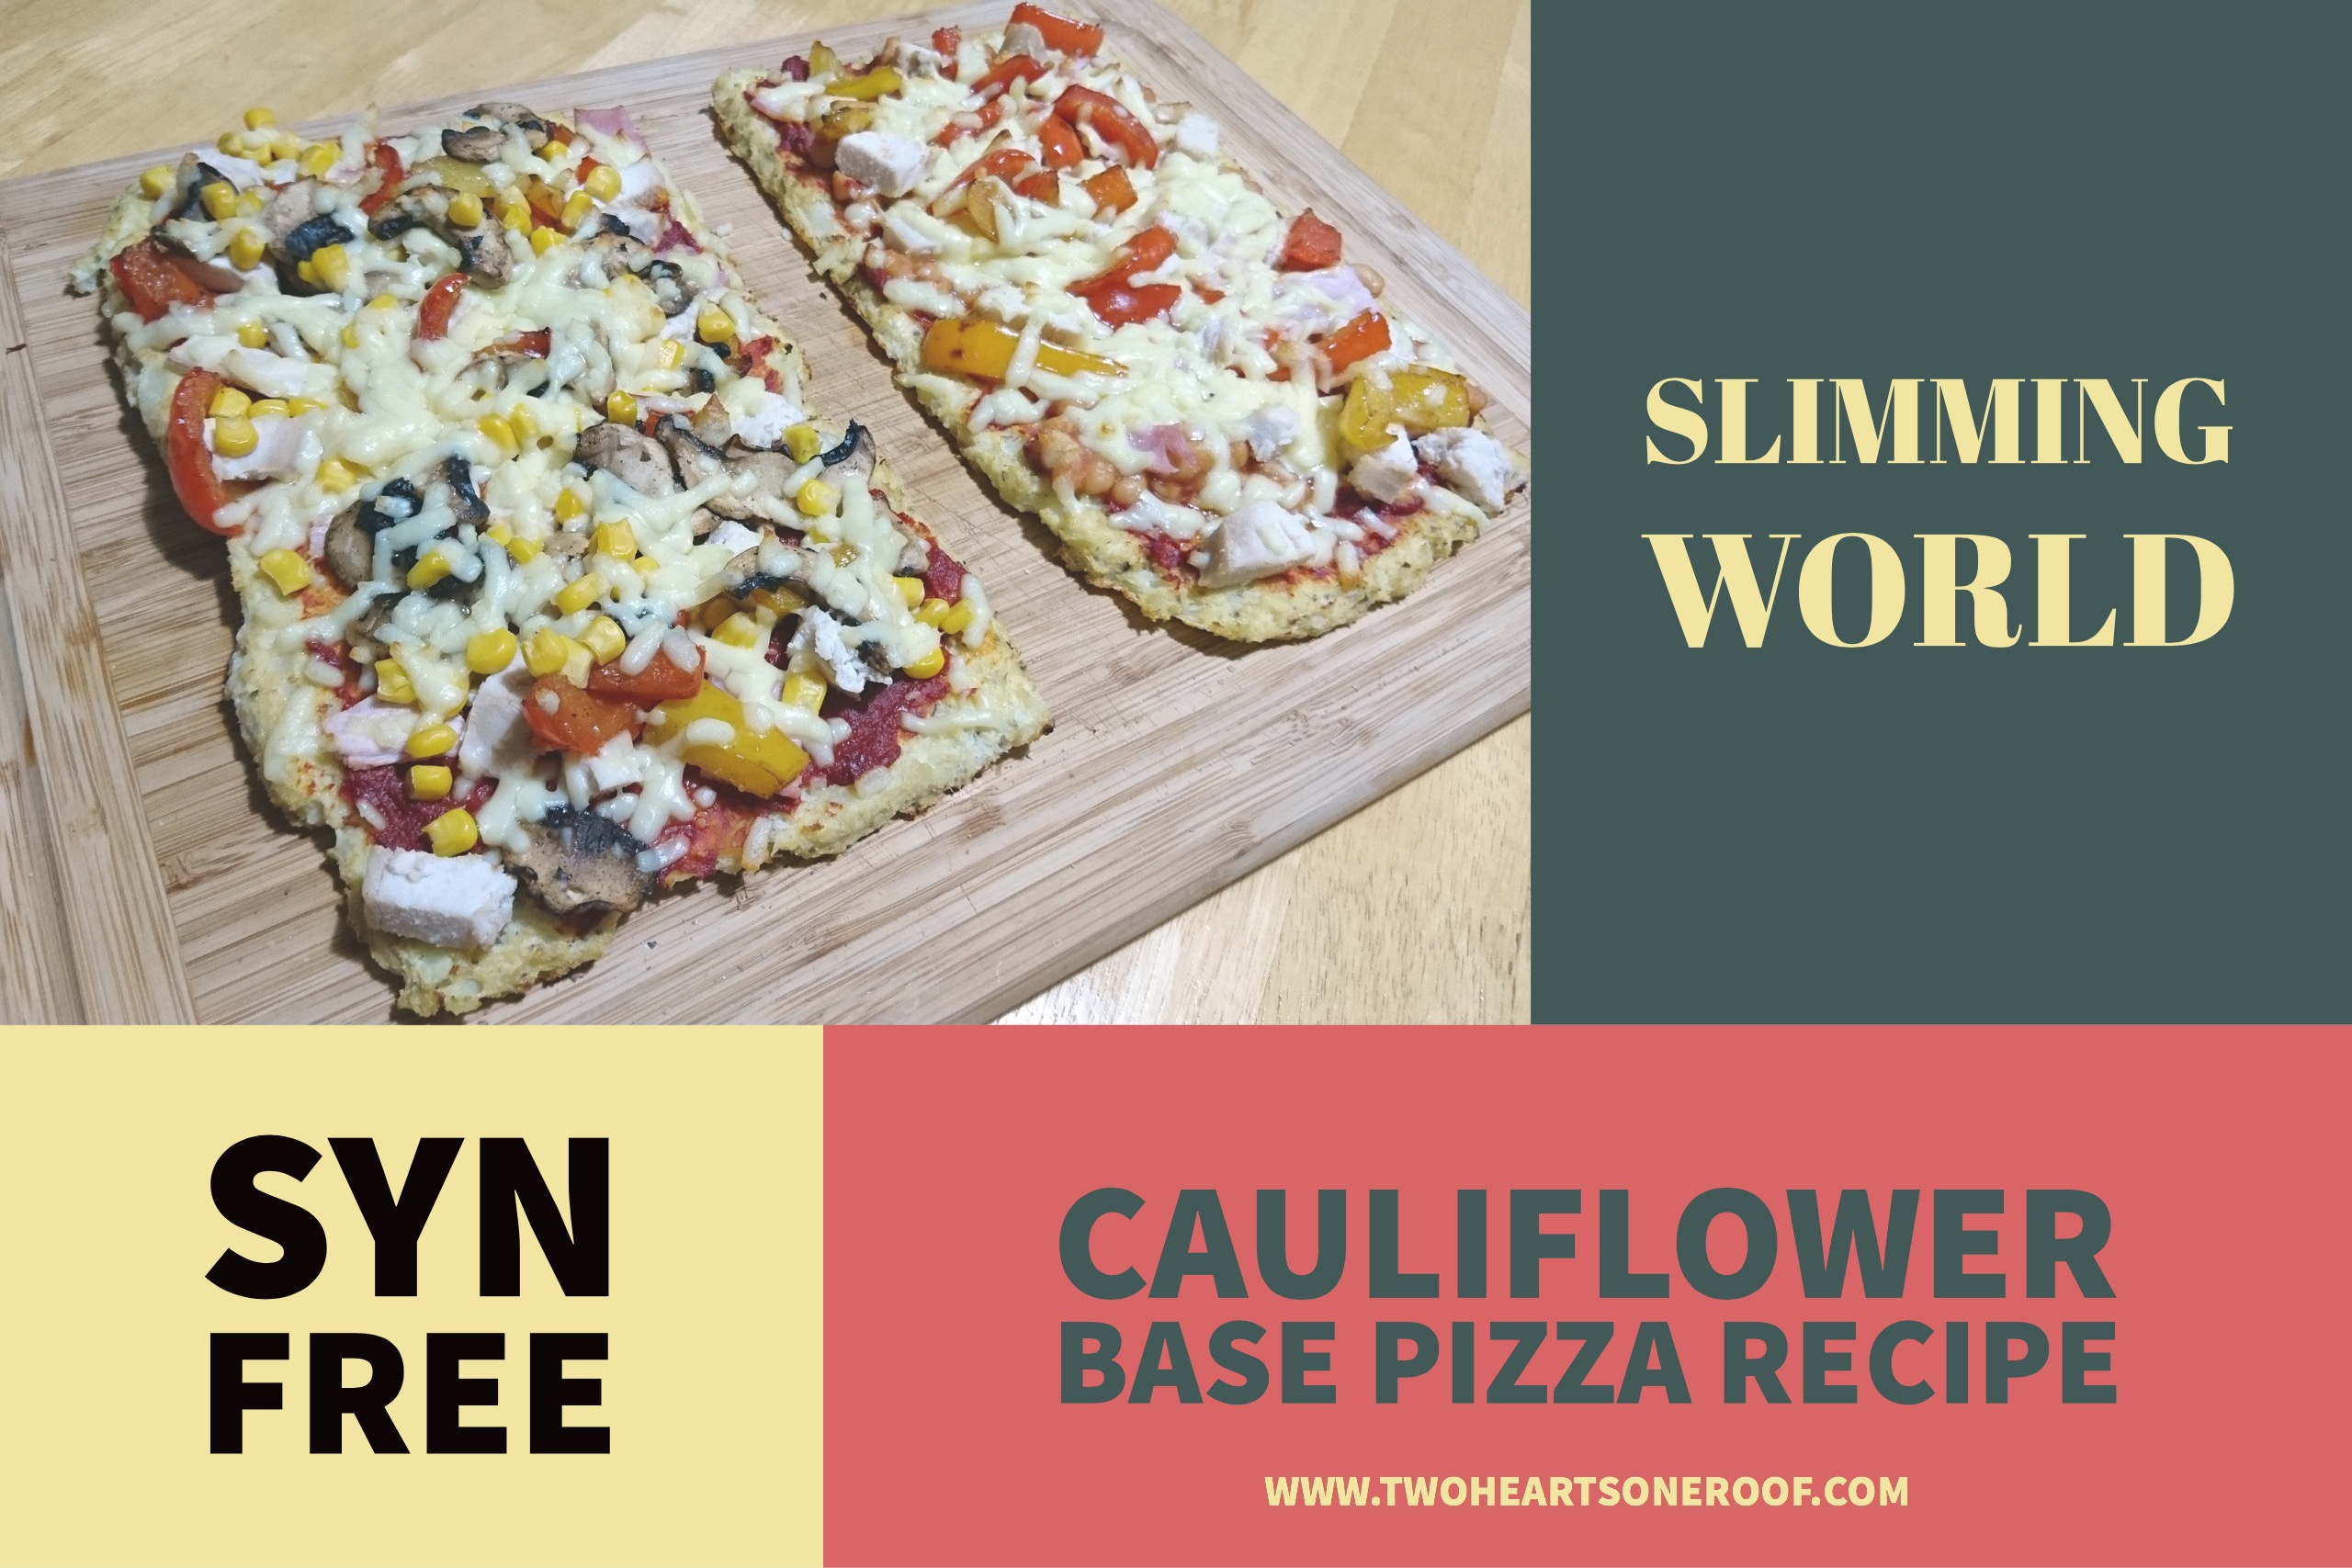 Syn Free Slimming World Cauliflower Pizza Syn Free Pizza